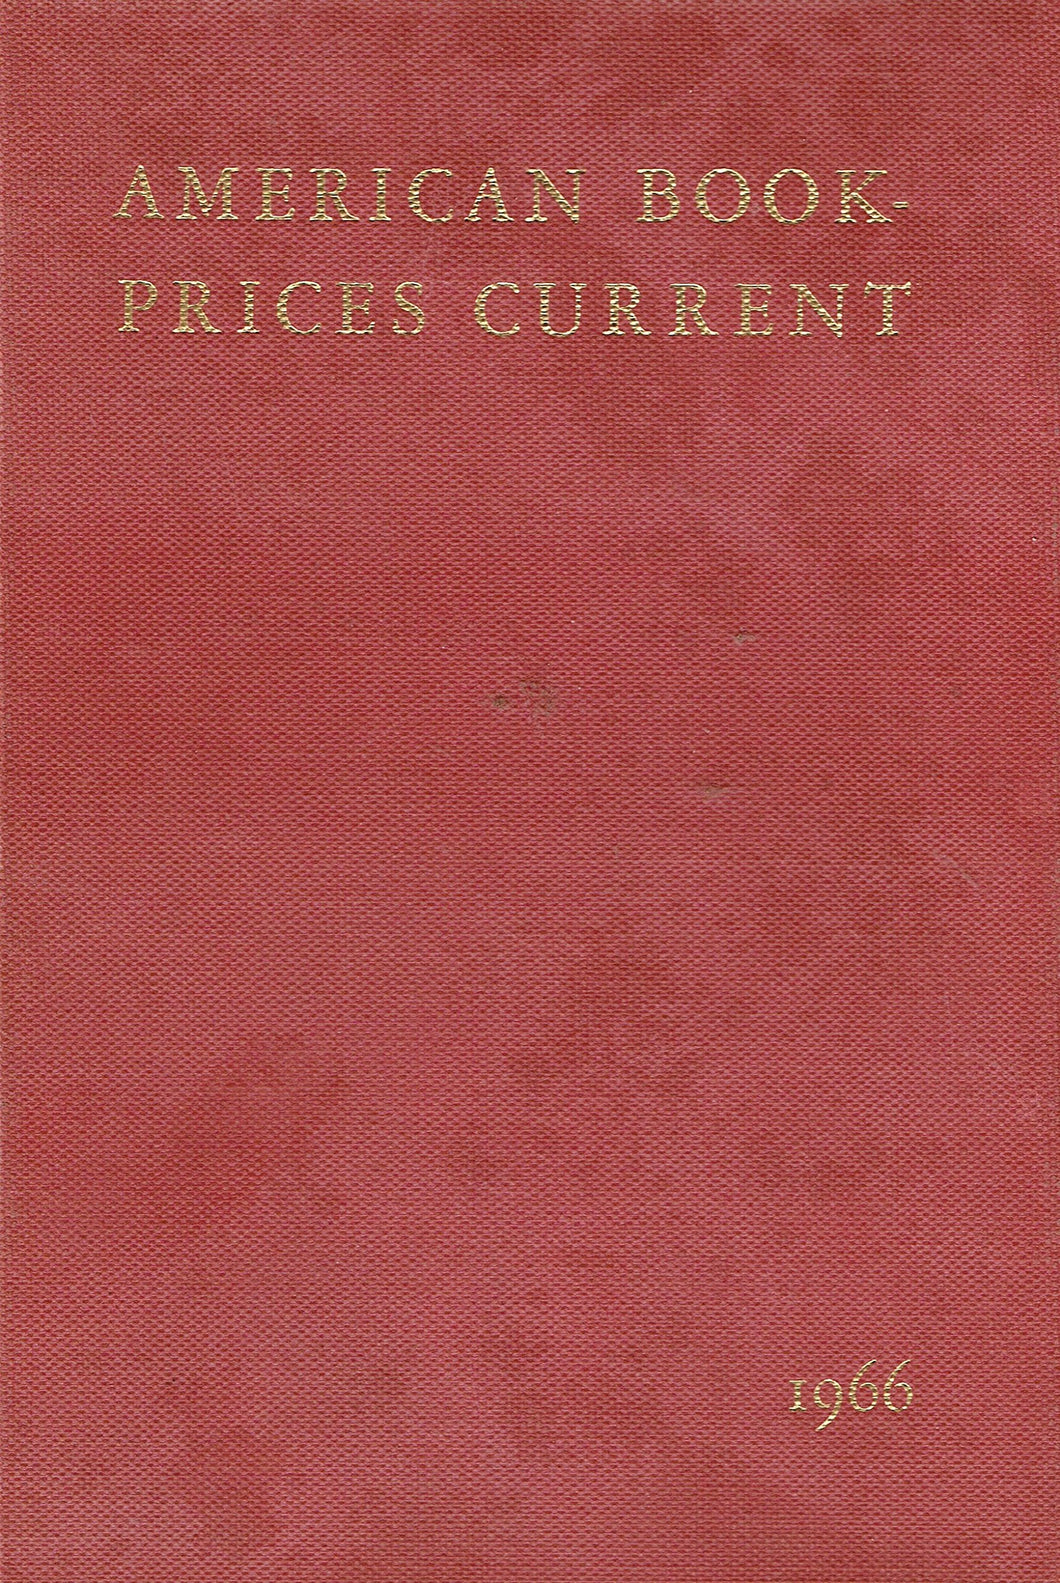 American Book-Prices Current Volume 72, 1966